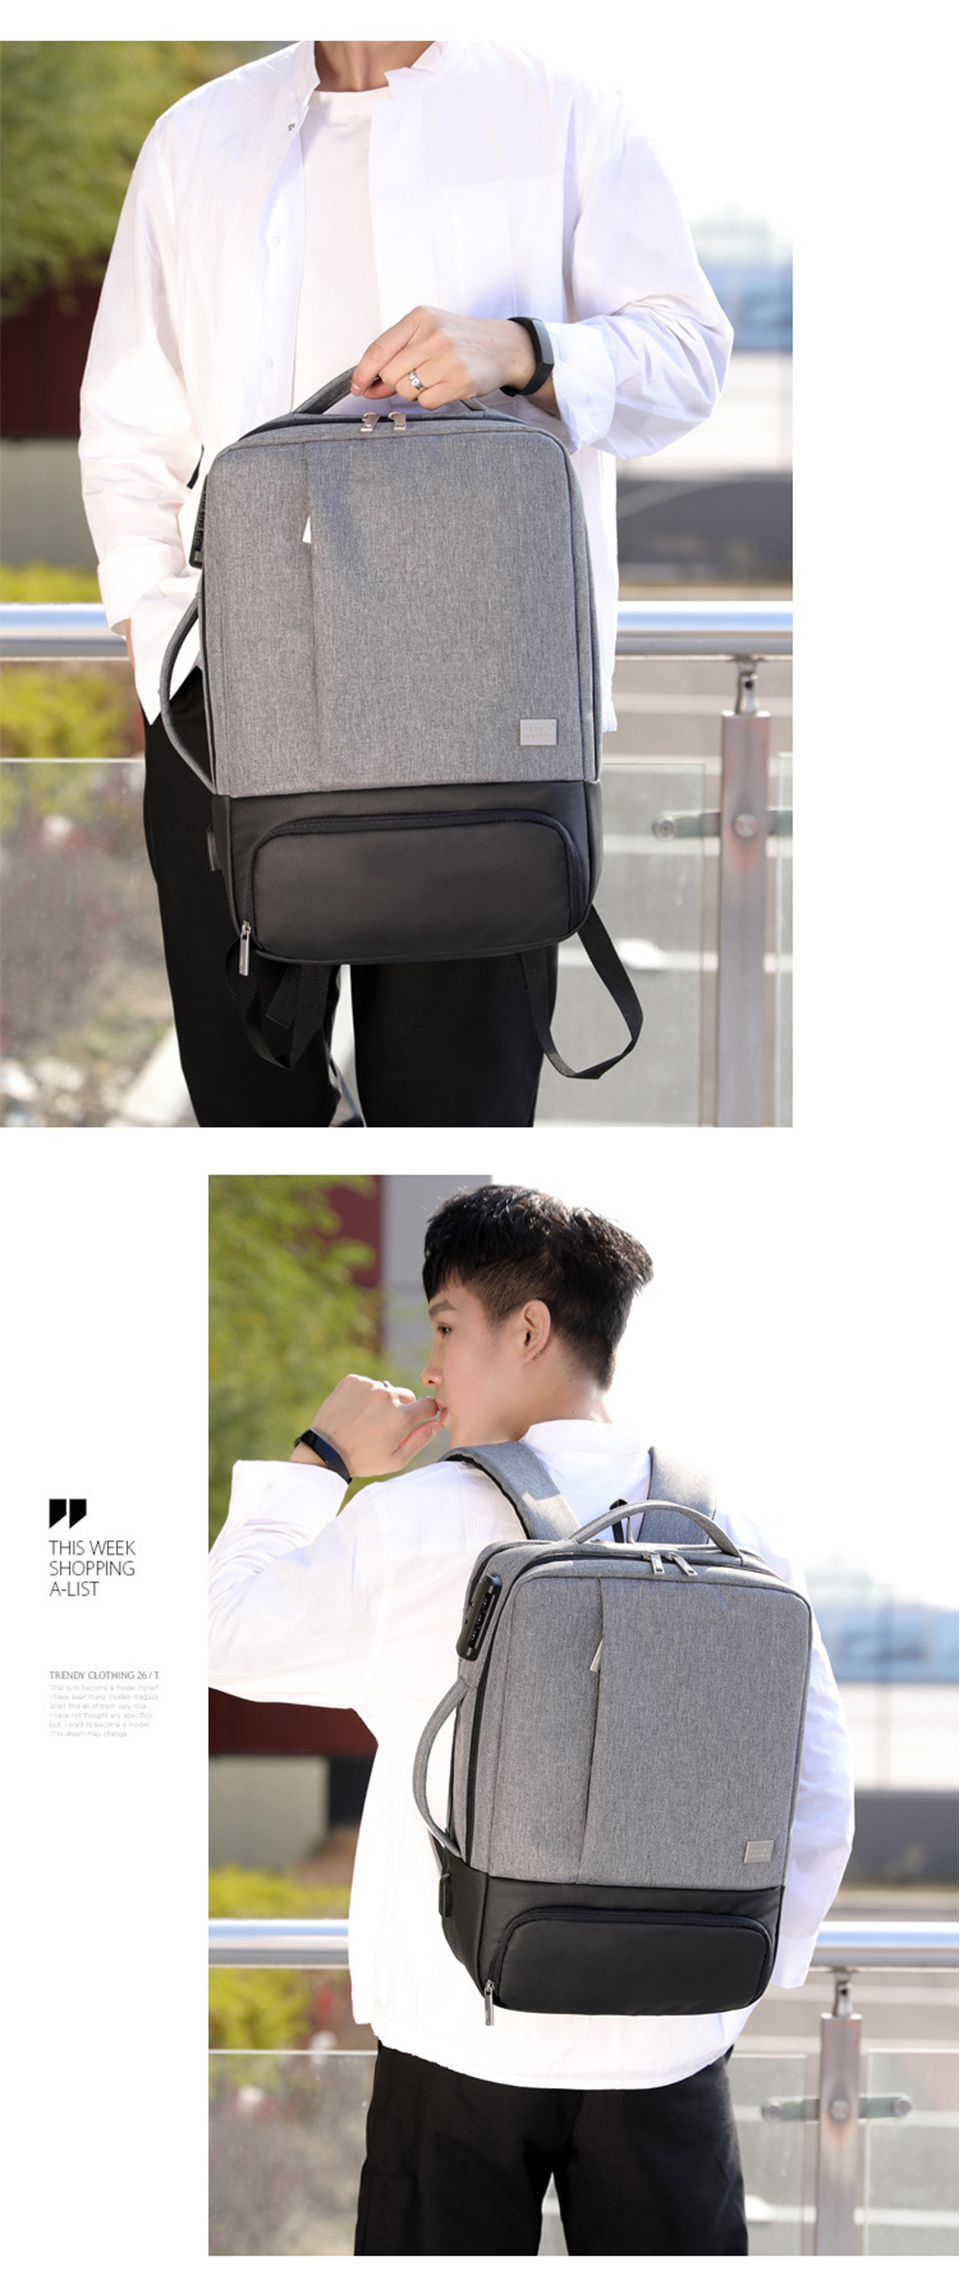 Laptop-Backpack-17-Inch-15.6-Anti-Theft-Backpack-Men-Business-Back-Pack-Male-Notebook-Travel-Student-Women-Bagpack-Office-Bags_21